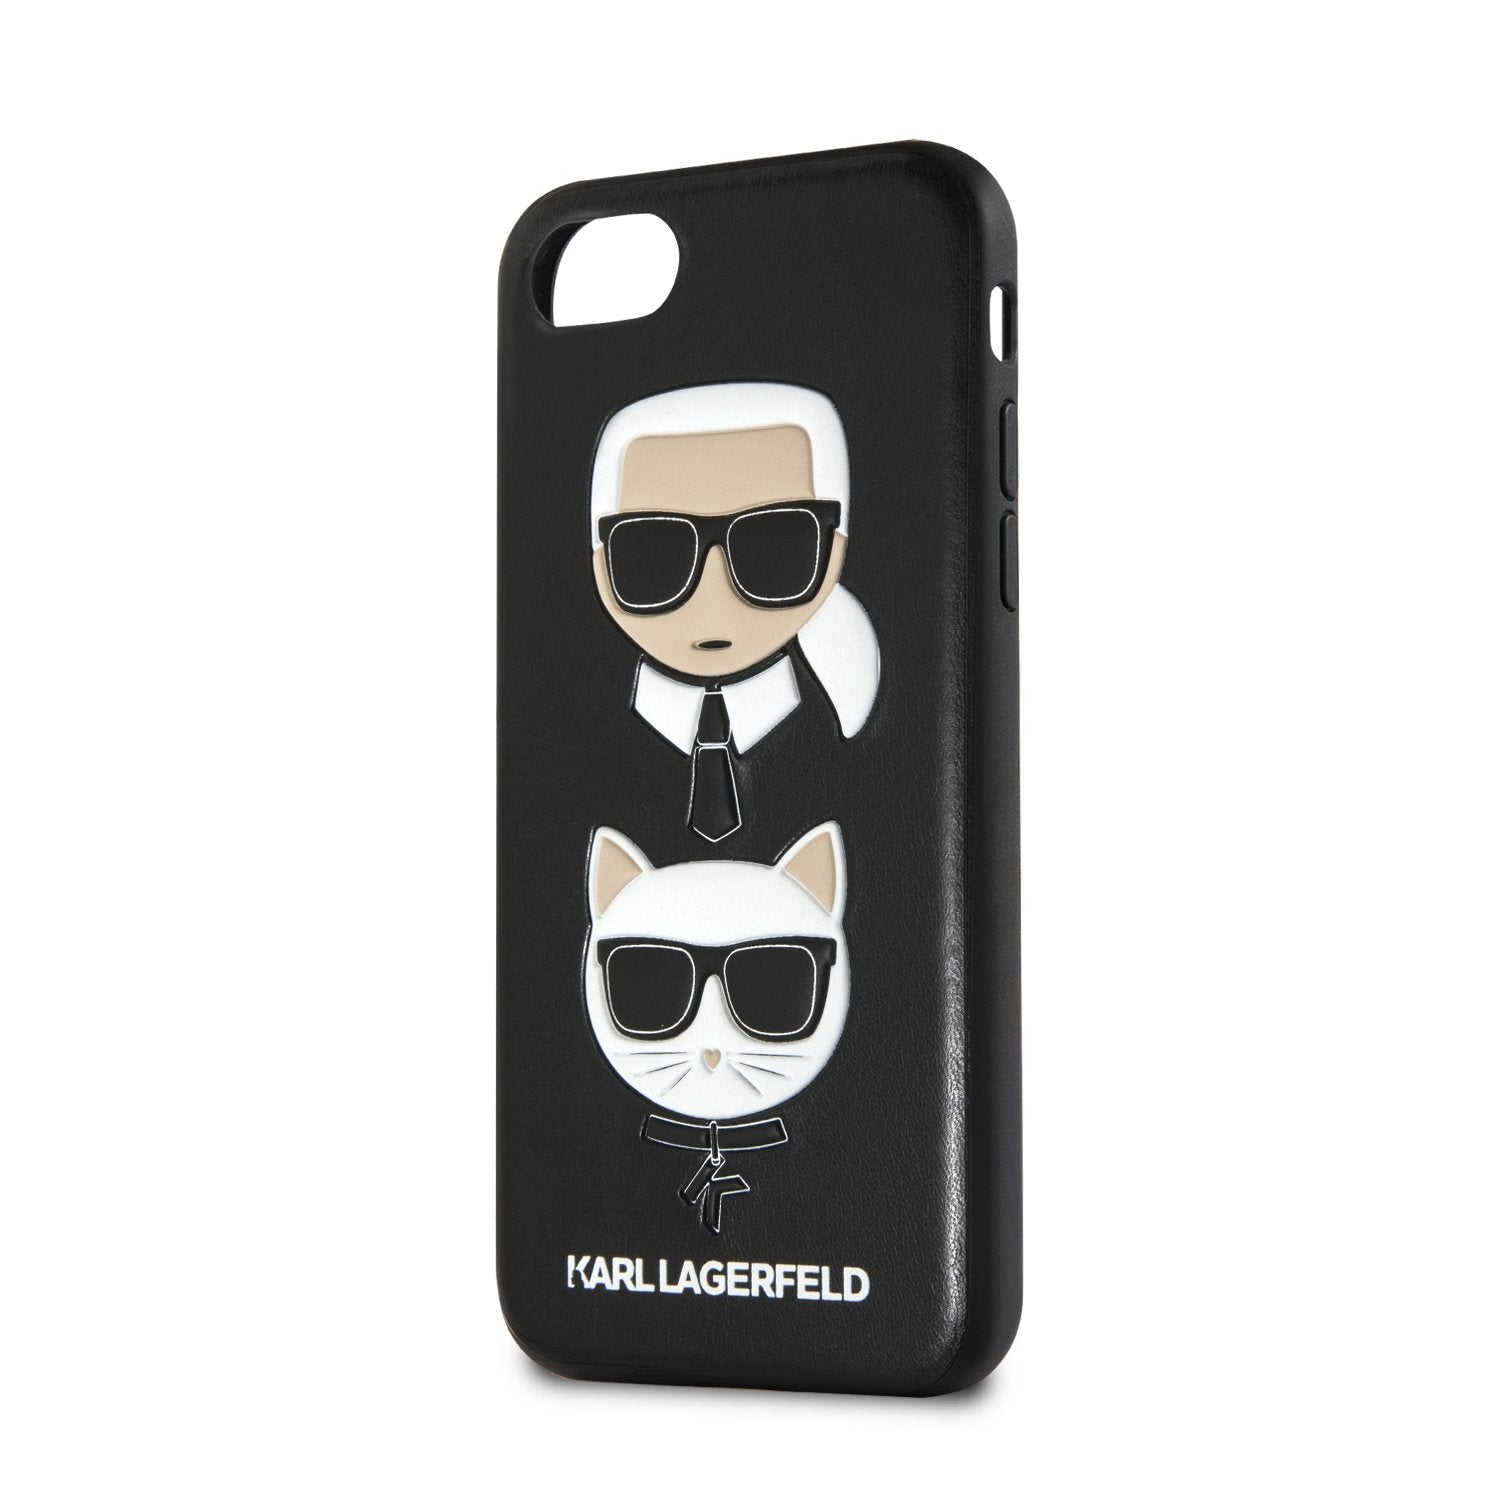 karl lagerfeld coque iphone 7